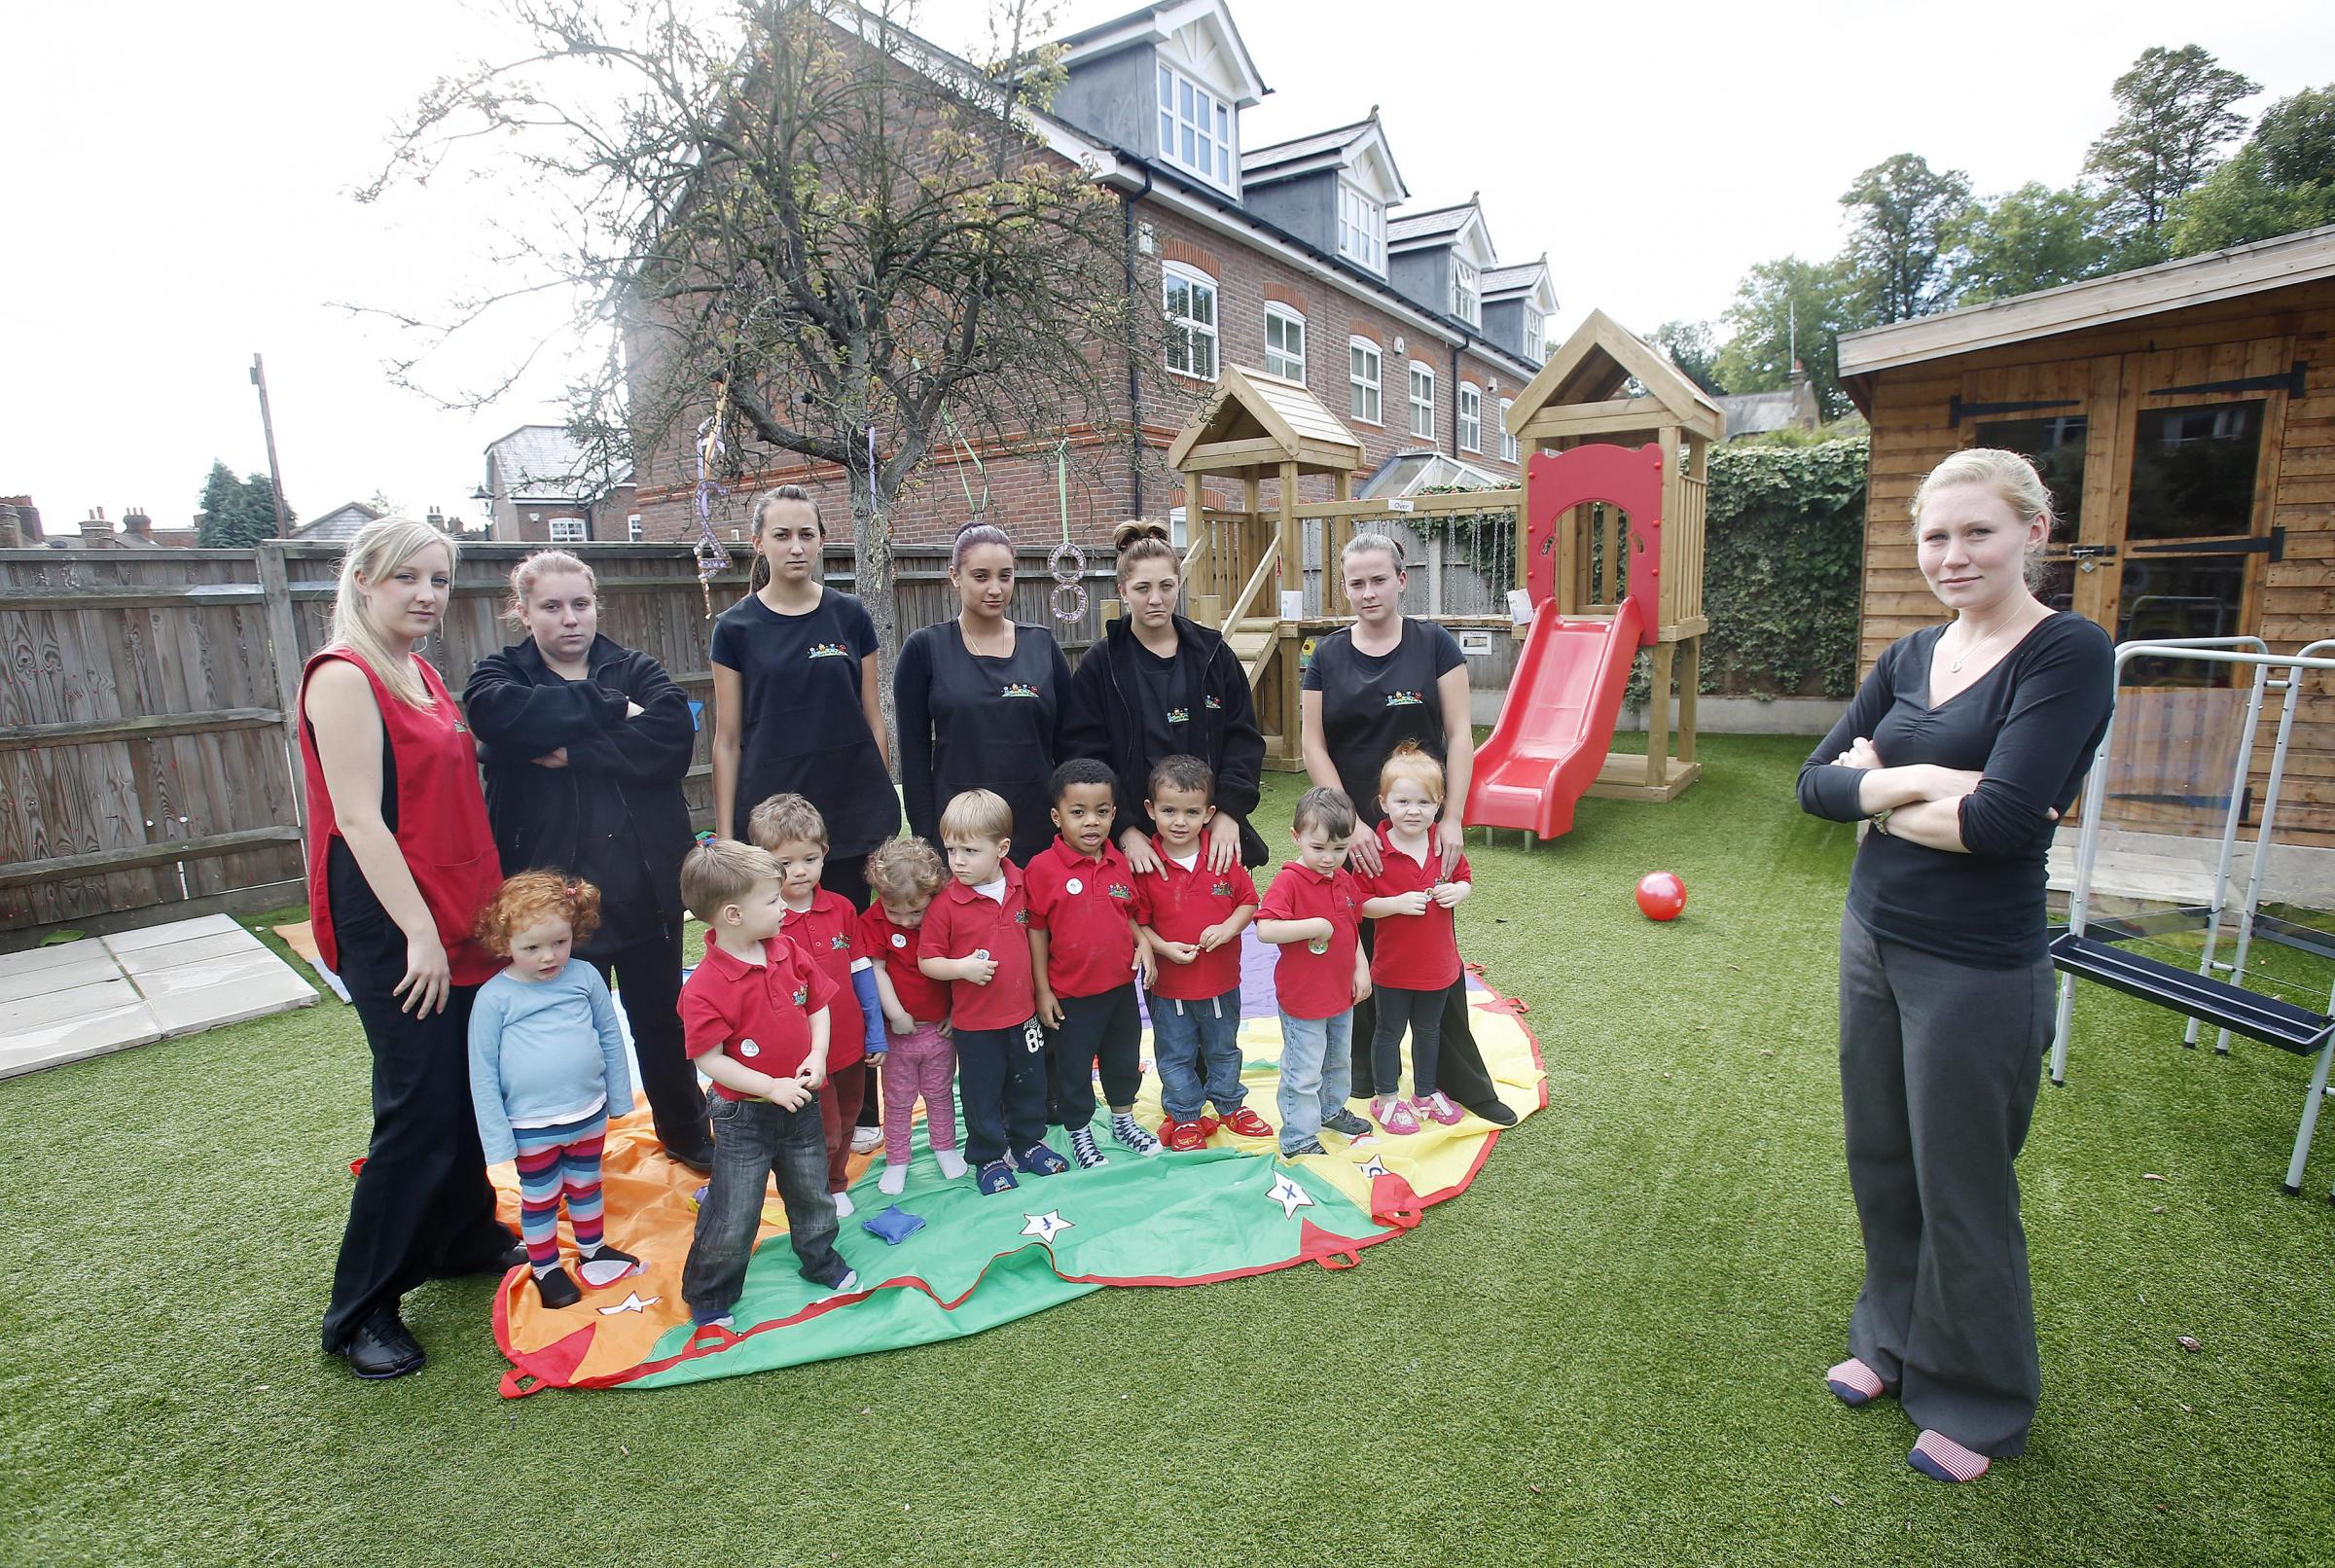 Staff and pupils at Nursery on the Green can rejoice as outdoor playtime is approved